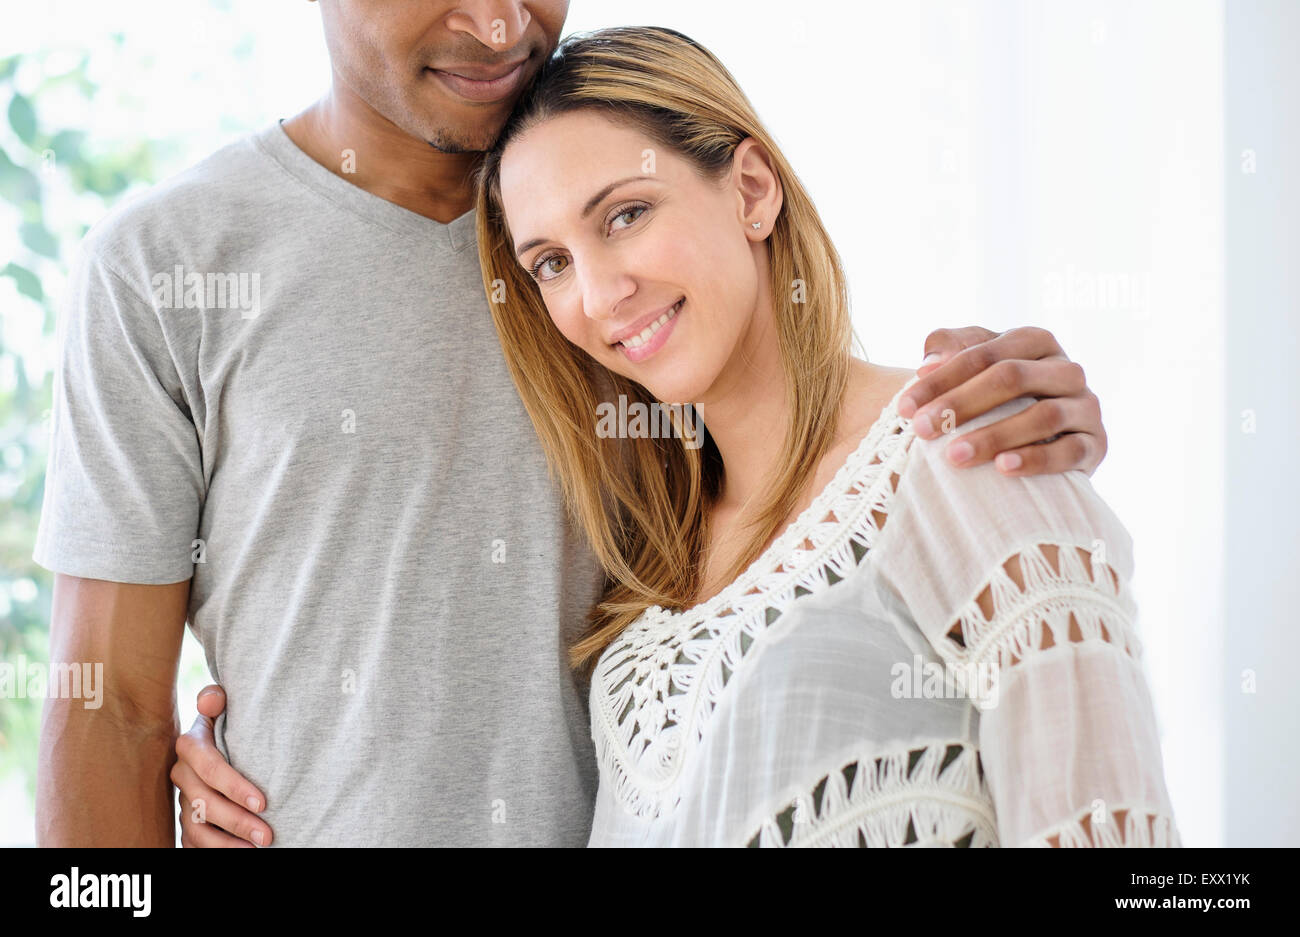 Young couple embracing Photo Stock